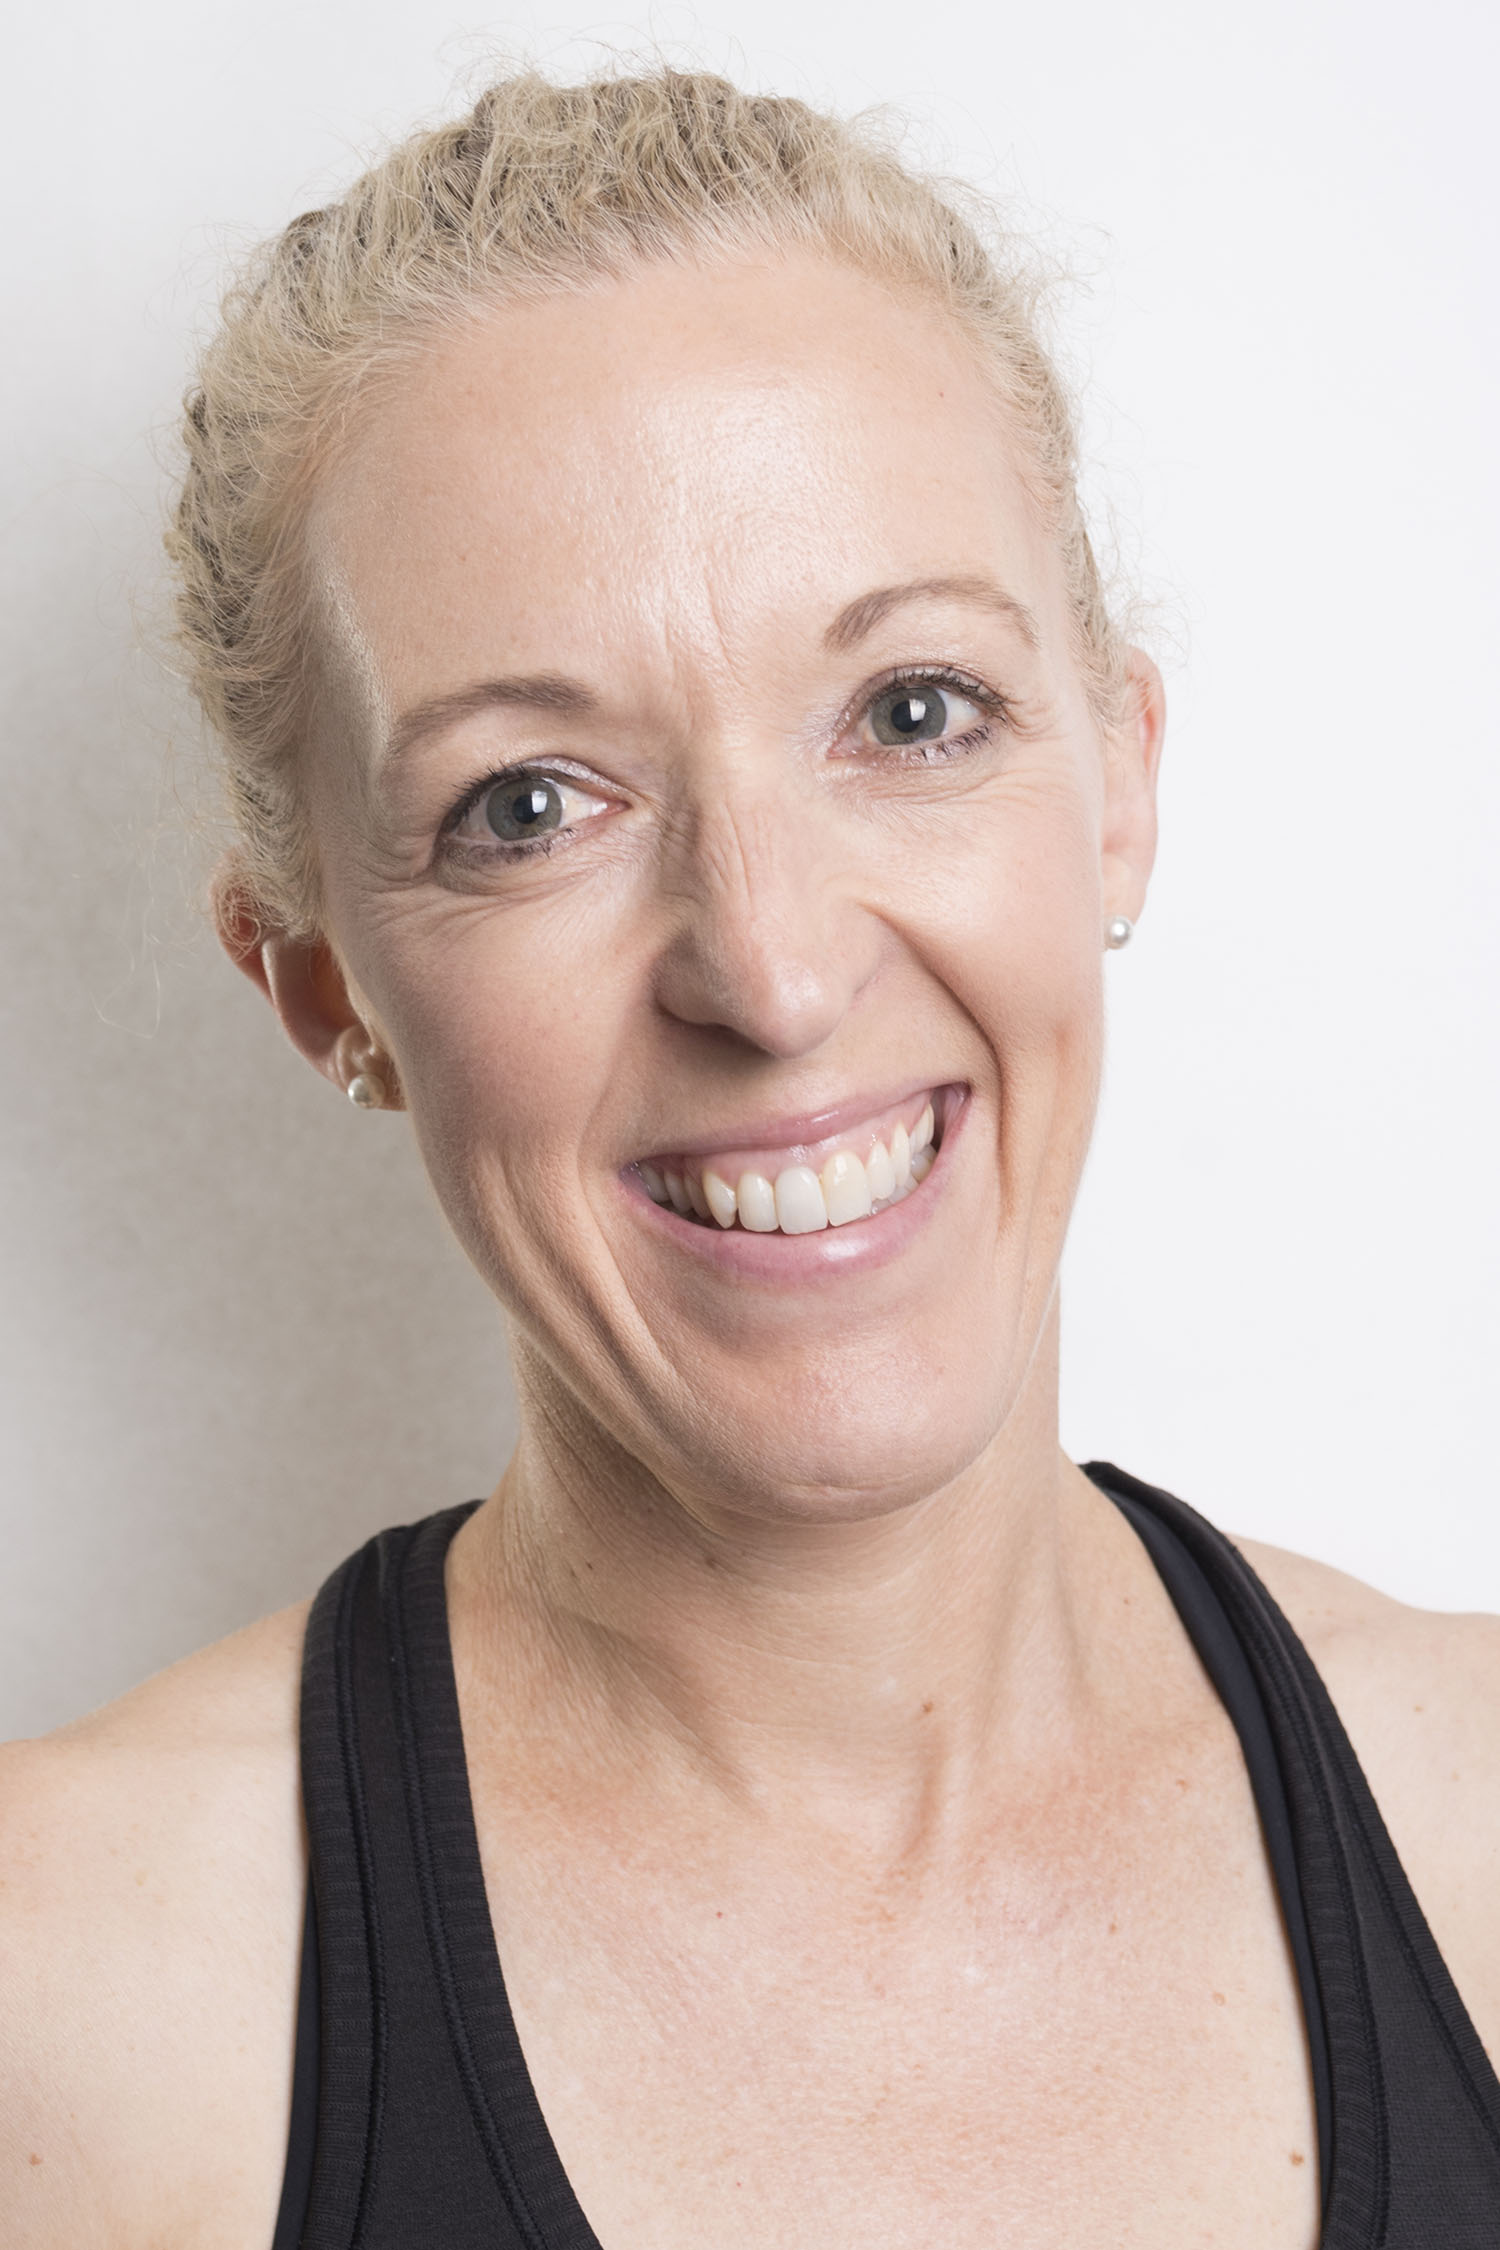 Nicky Burton - Diploma of Professional Pilates Instructor (currently studying the Advanced Diploma of the Pilates Method)Health and fitness have always been a major part of my life. Growing up I was lucky enough to play the sport I loved - netball - at an elite level.I had heard a lot of great things about Pilates but didn't really understand the true benefits of it until I started practising Pilates myself. I found my body became stronger and I just felt better.It didn't take me long to know that I really wanted to explore Pilates further and so I commenced my Diploma in Pilates Instruction in 2017 and have never looked back. I love working with clients to achieve their goals and watching them improve on a weekly basis. I strive to make each session an enjoyable one and an environment that clients want to be a part of.